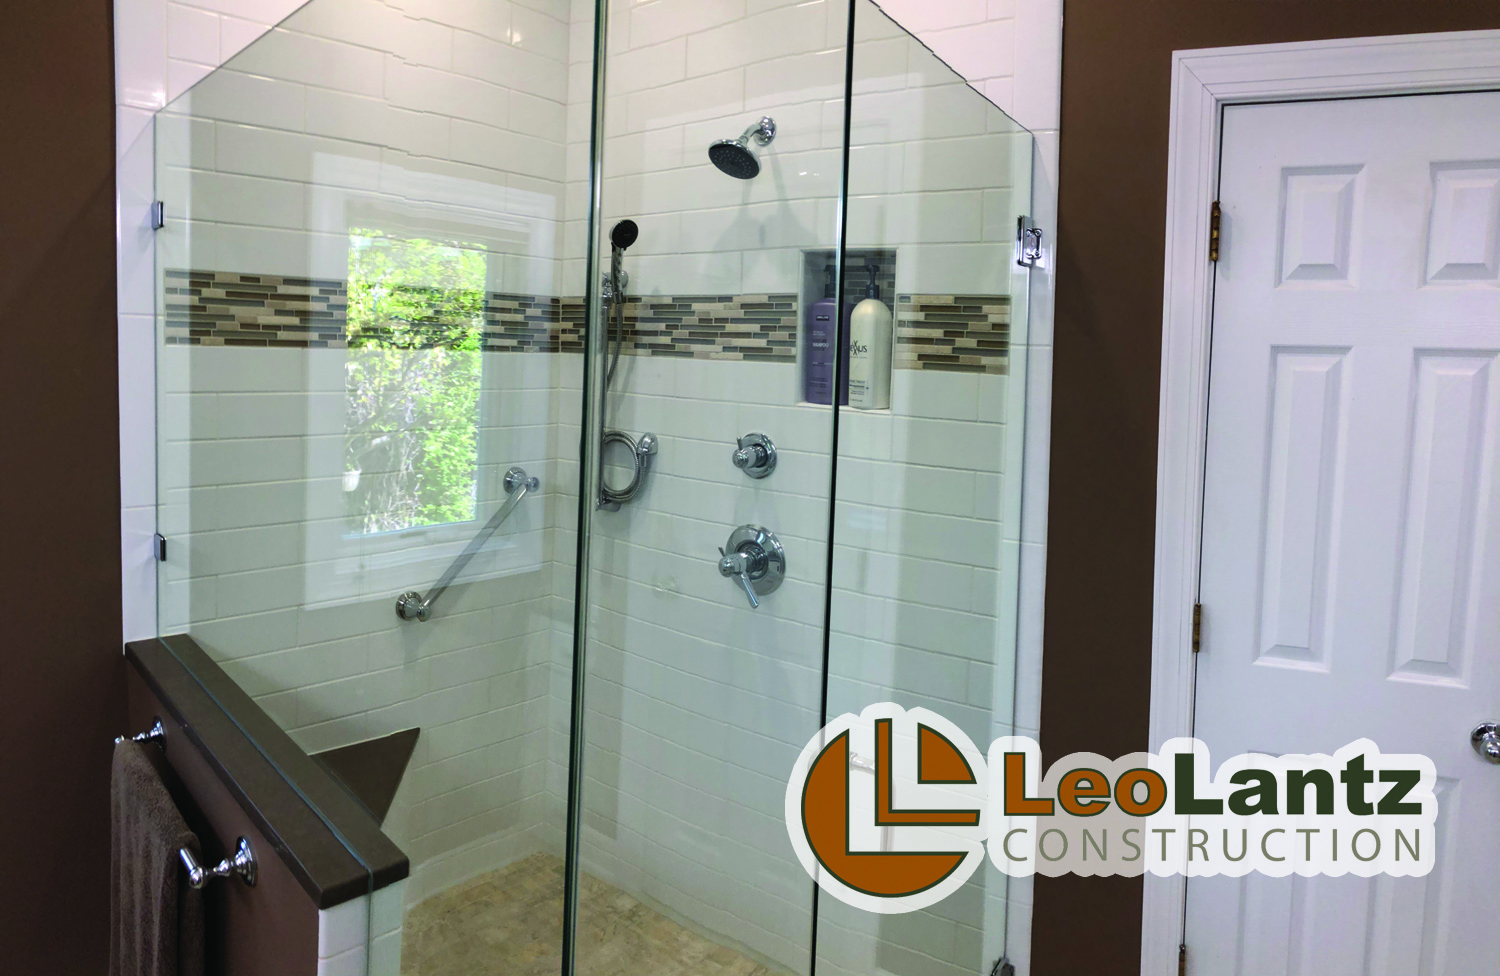 Residential Bath Under $50,000 - Leo Lantz Construction, Inc.Herman Allen Plumbing, Heating & CoolingMorris Tile DistributorsRVA Shower DoorPella Windows & DoorsFerguson Enterprises